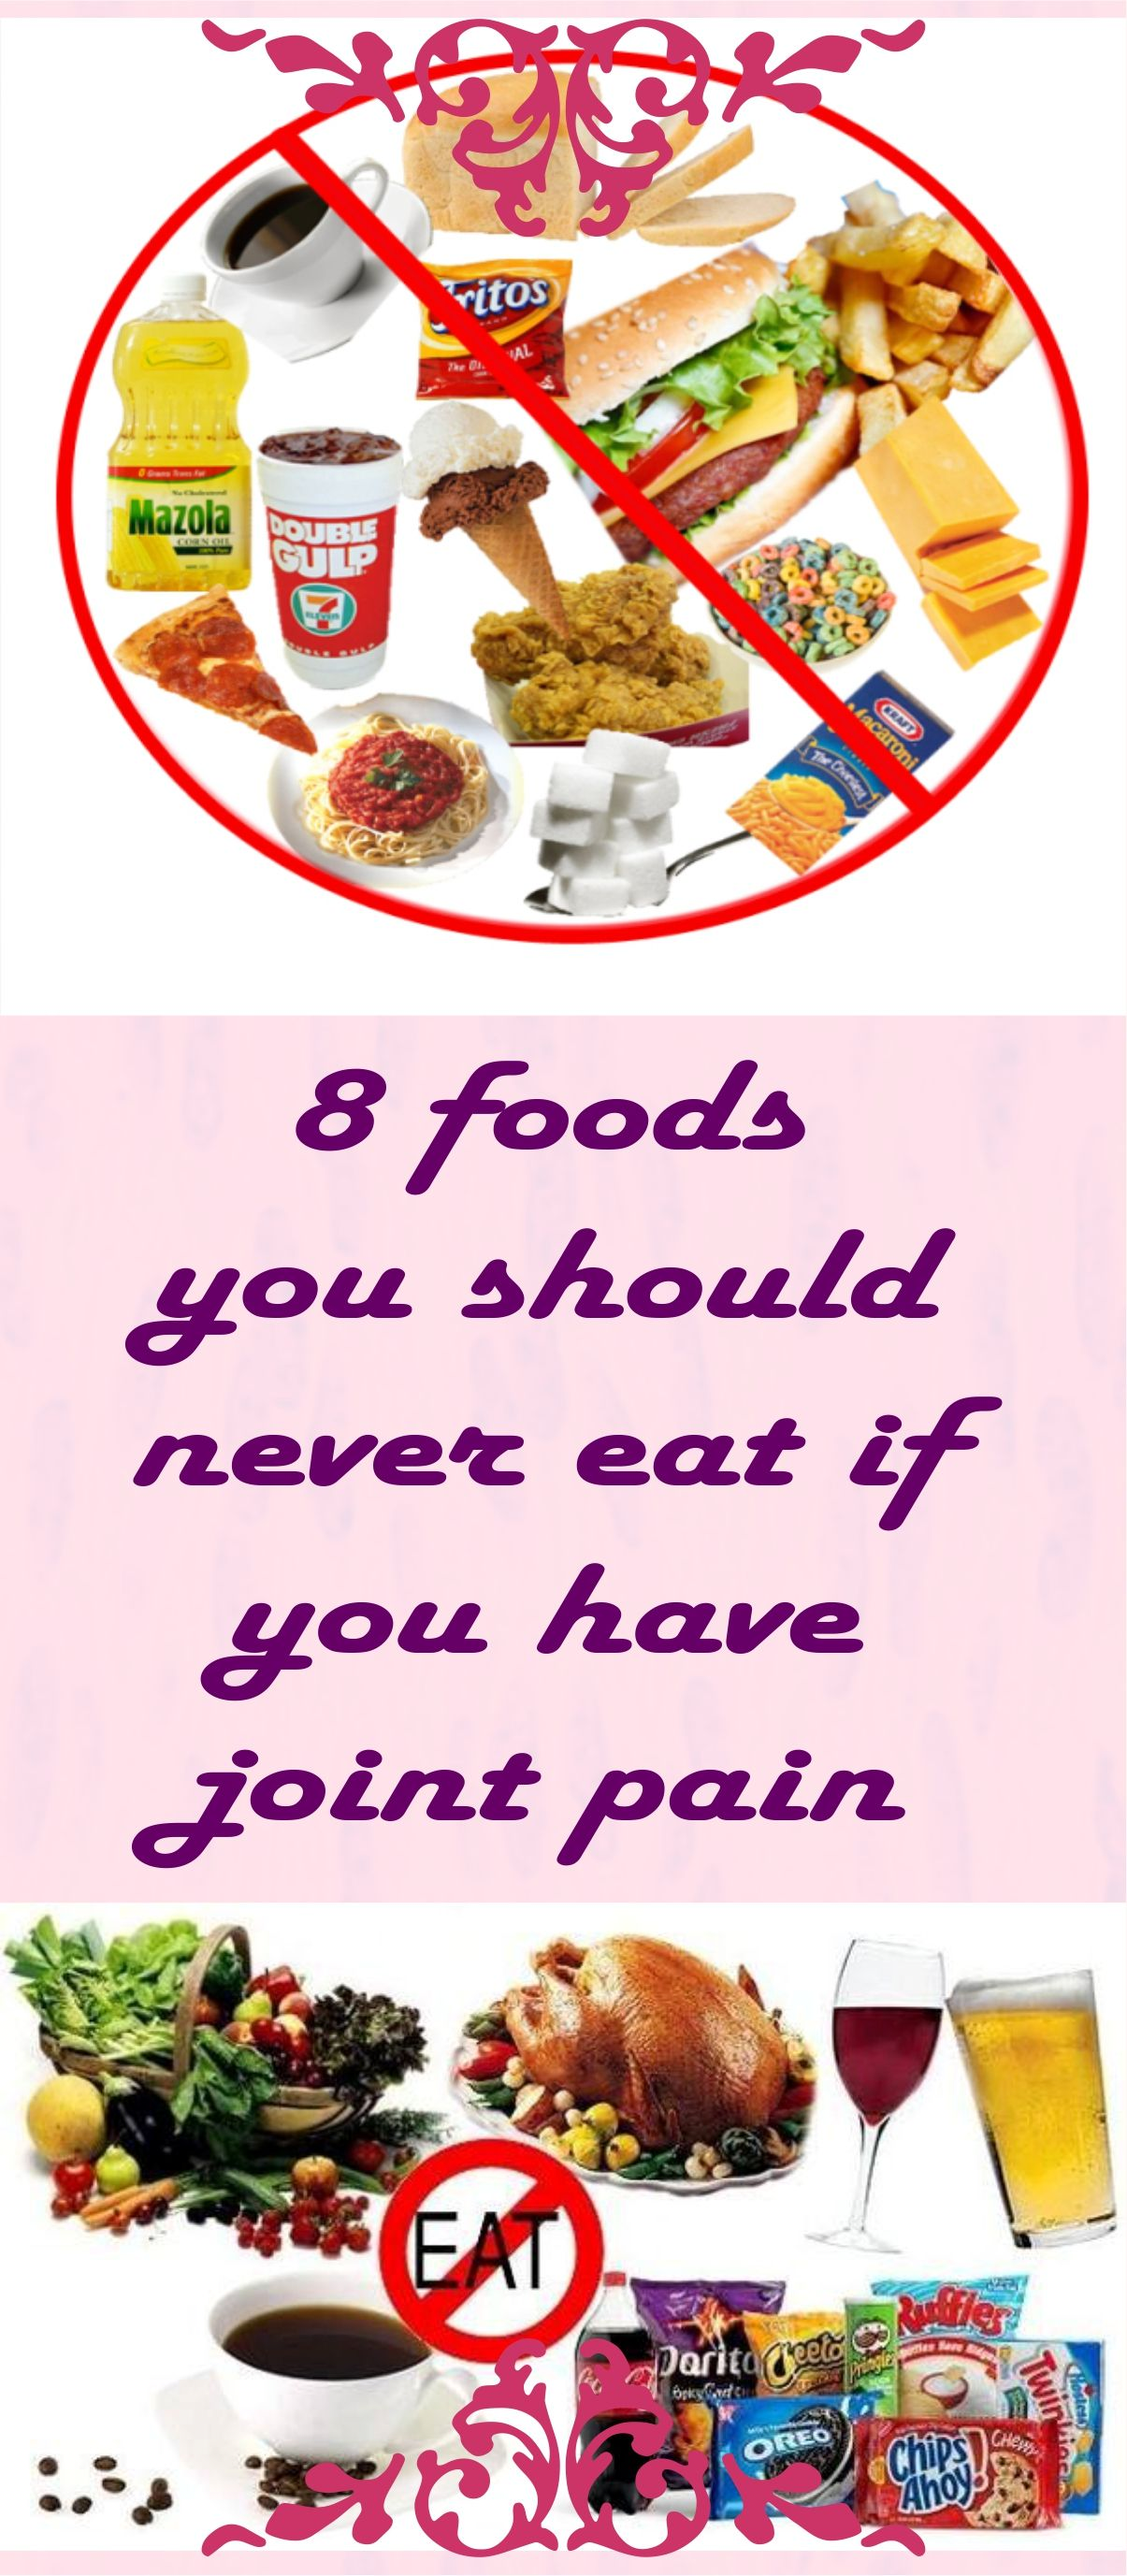 Forum on this topic: 8 foods you should never eat before , 8-foods-you-should-never-eat-before/